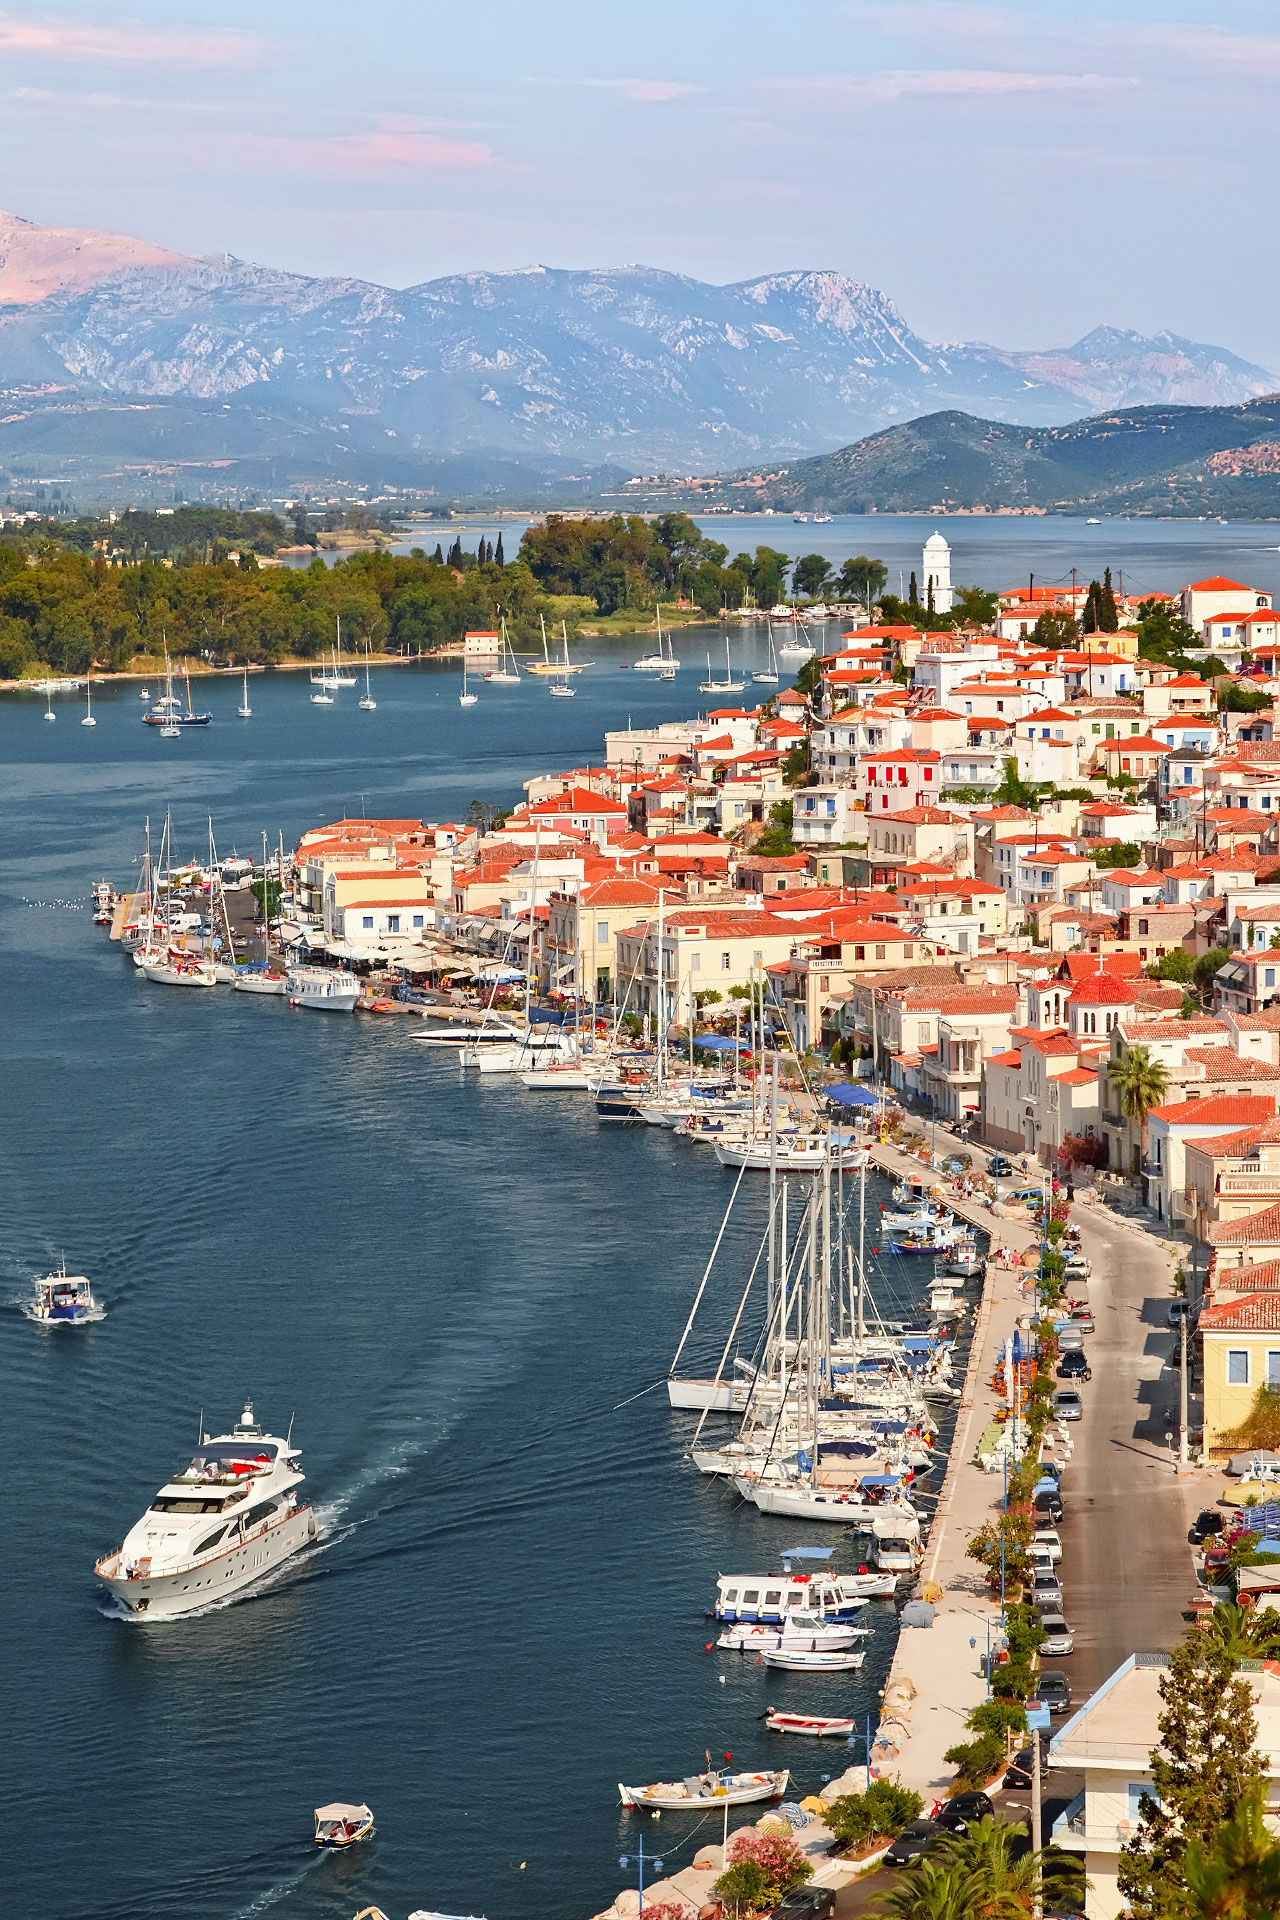 View of Poros from above